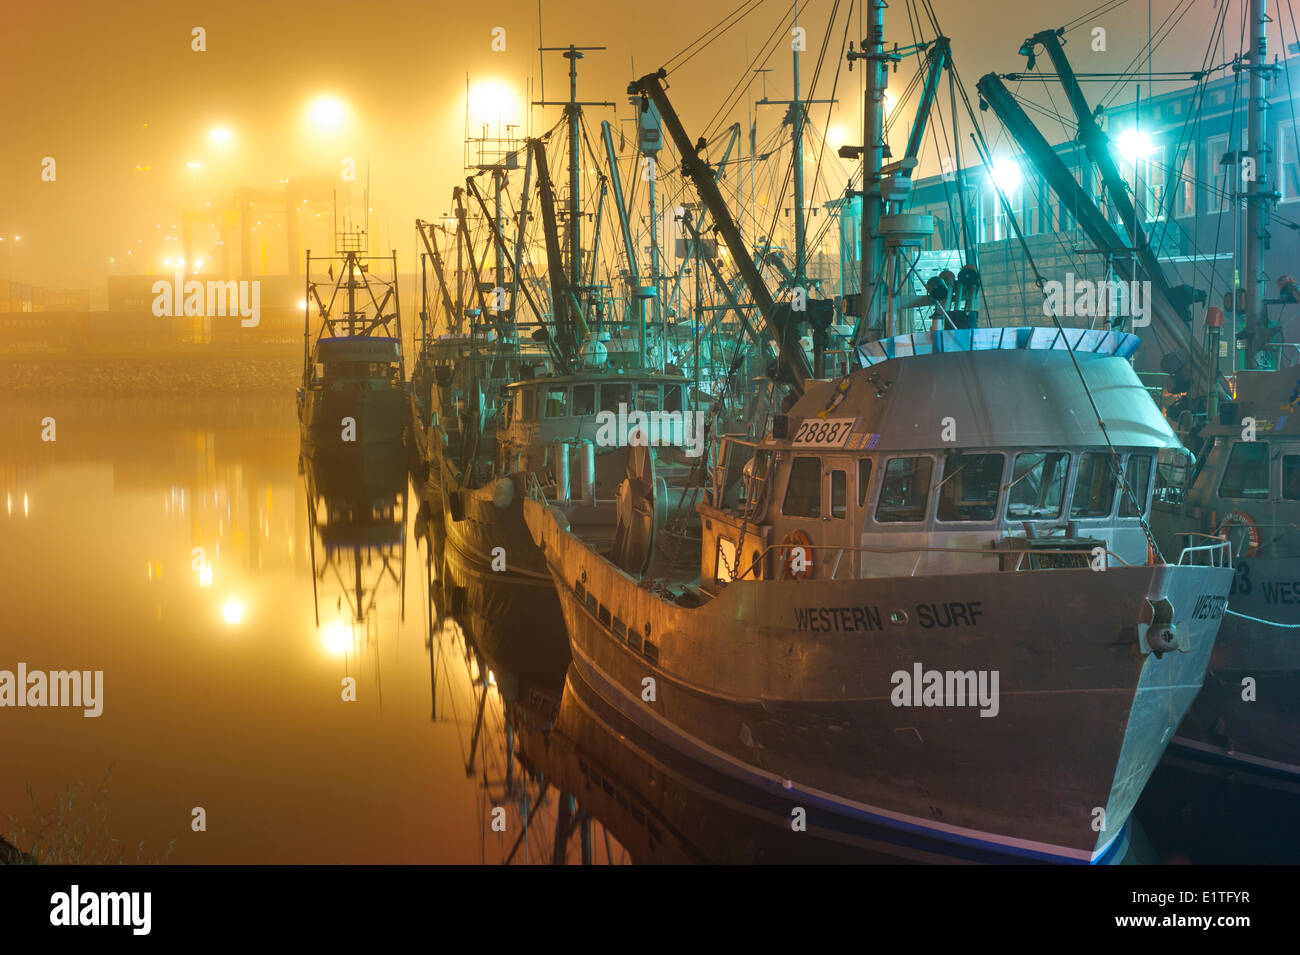 Commercial Fishing Boats in Vancouver Harbour,  British Columbia, Canada - Stock Image